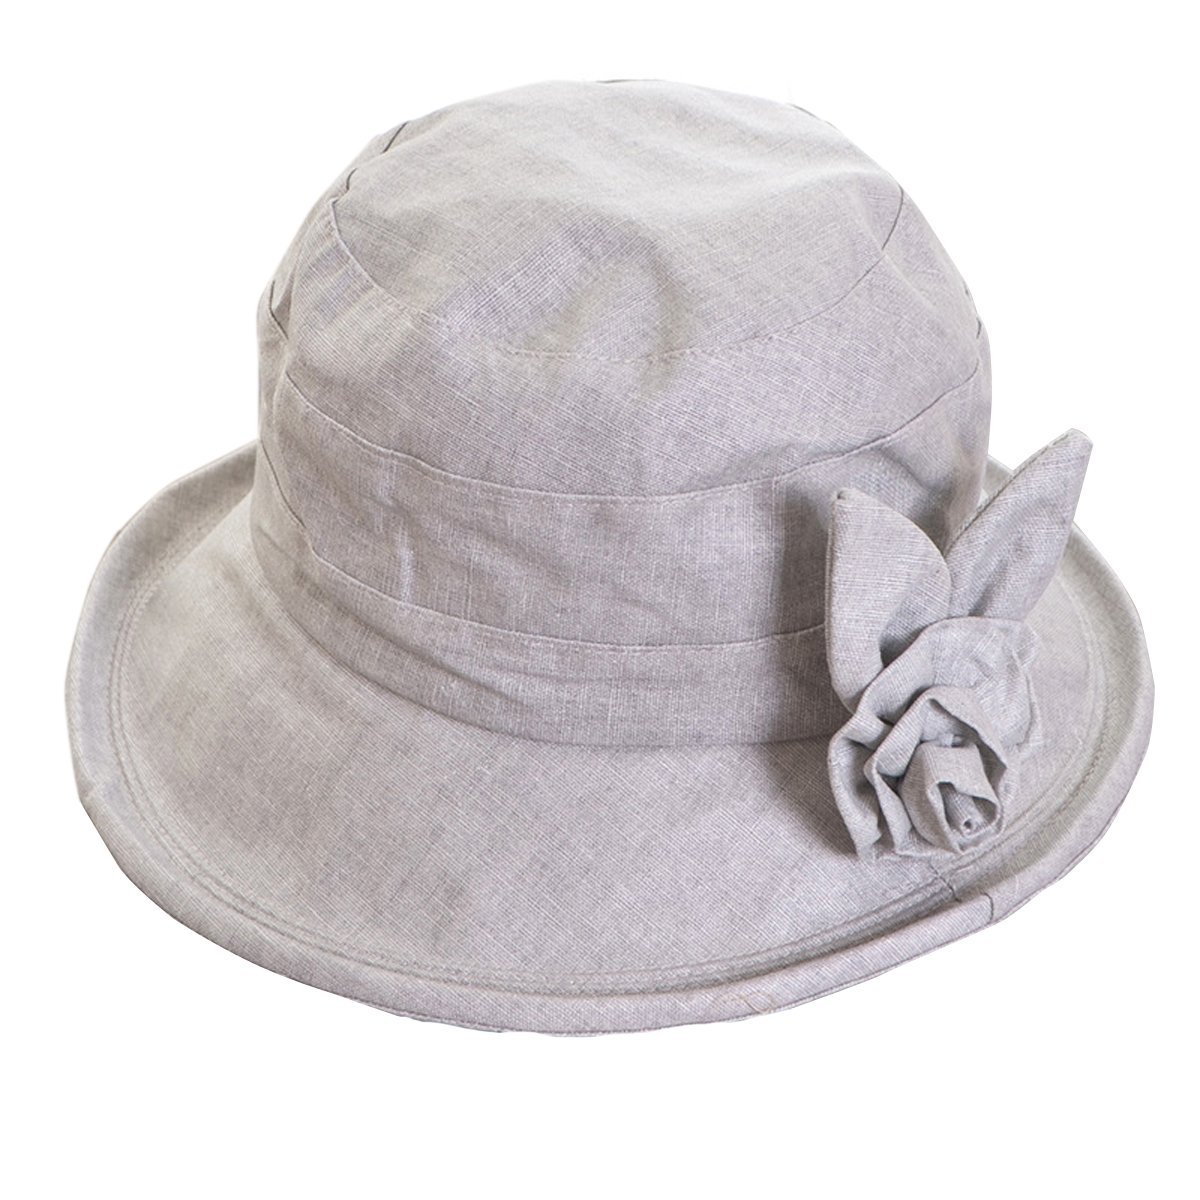 8ff10285c3f Butterme 100% Cotton Korean Fashion Bucket Hat with Lovely Flower  Decoration Graceful Sun Hat for Women Lady Girls (Grey Blue)  Amazon.co.uk   Clothing